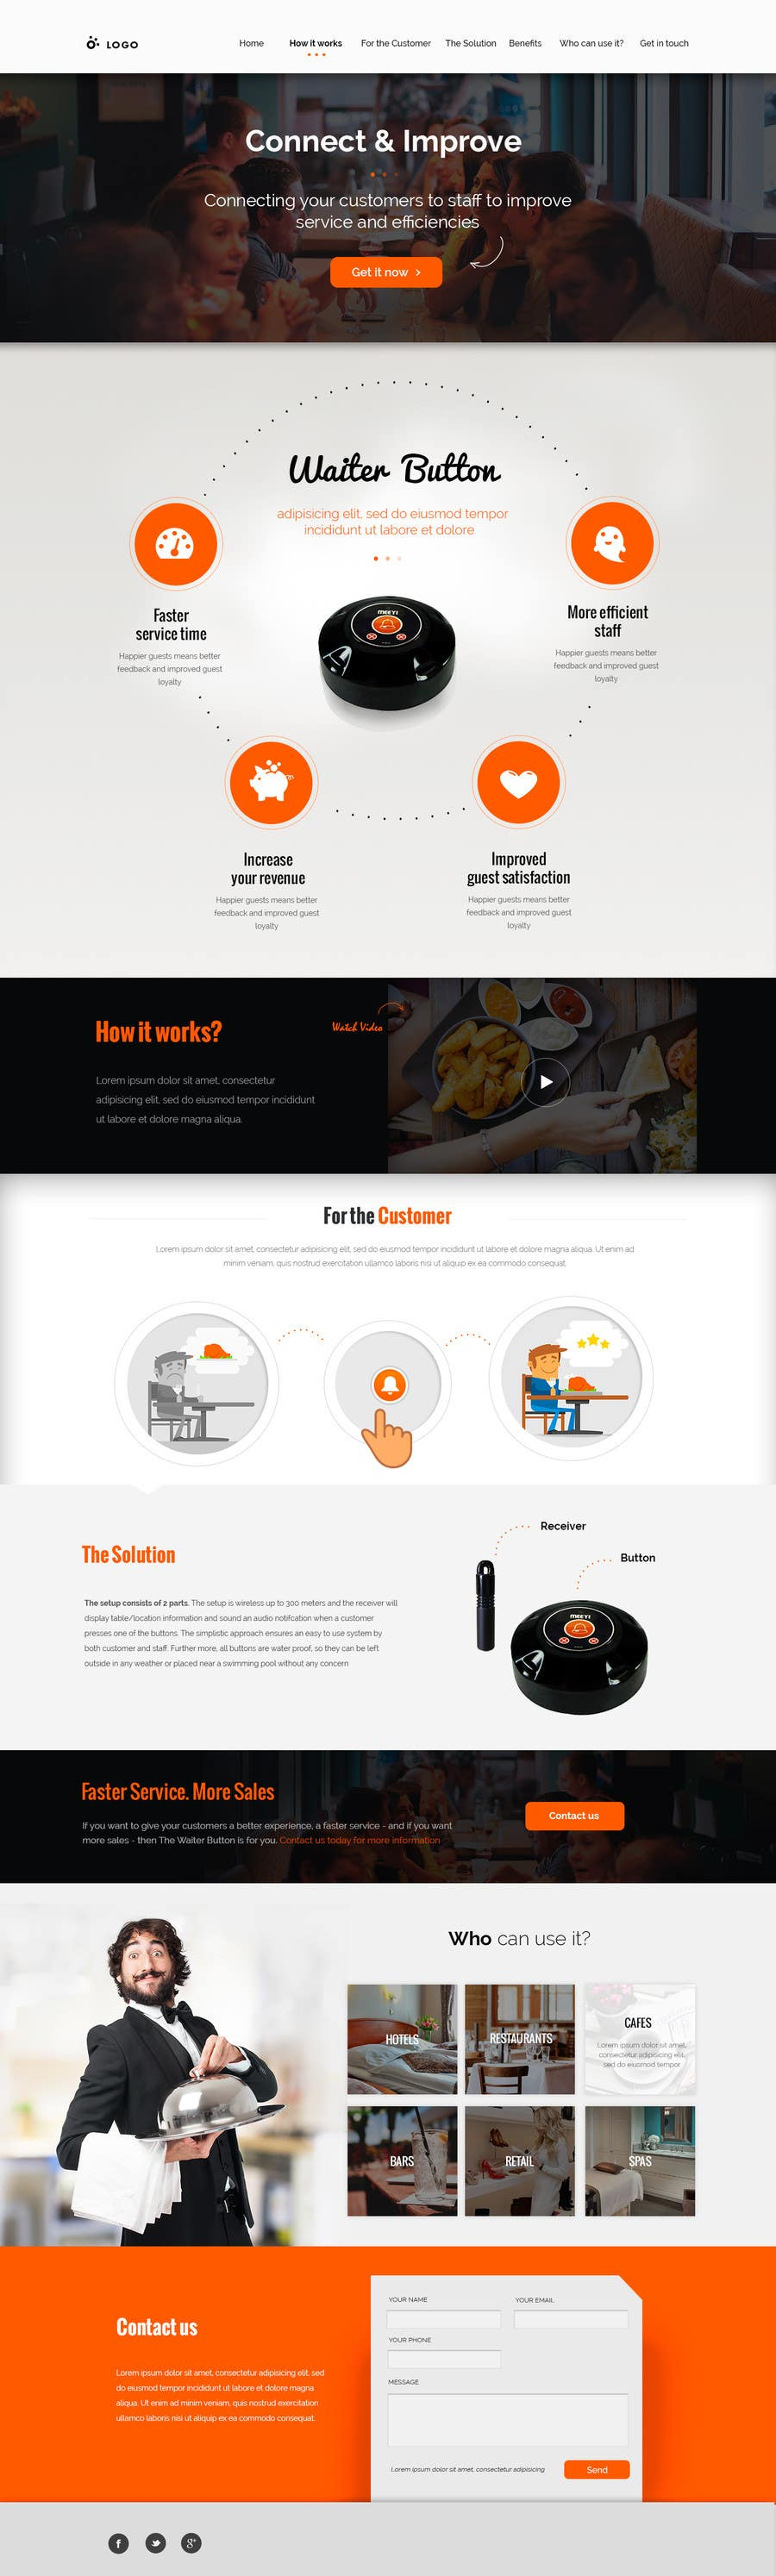 Proposition n°27 du concours Design a Website Mockup for a new product